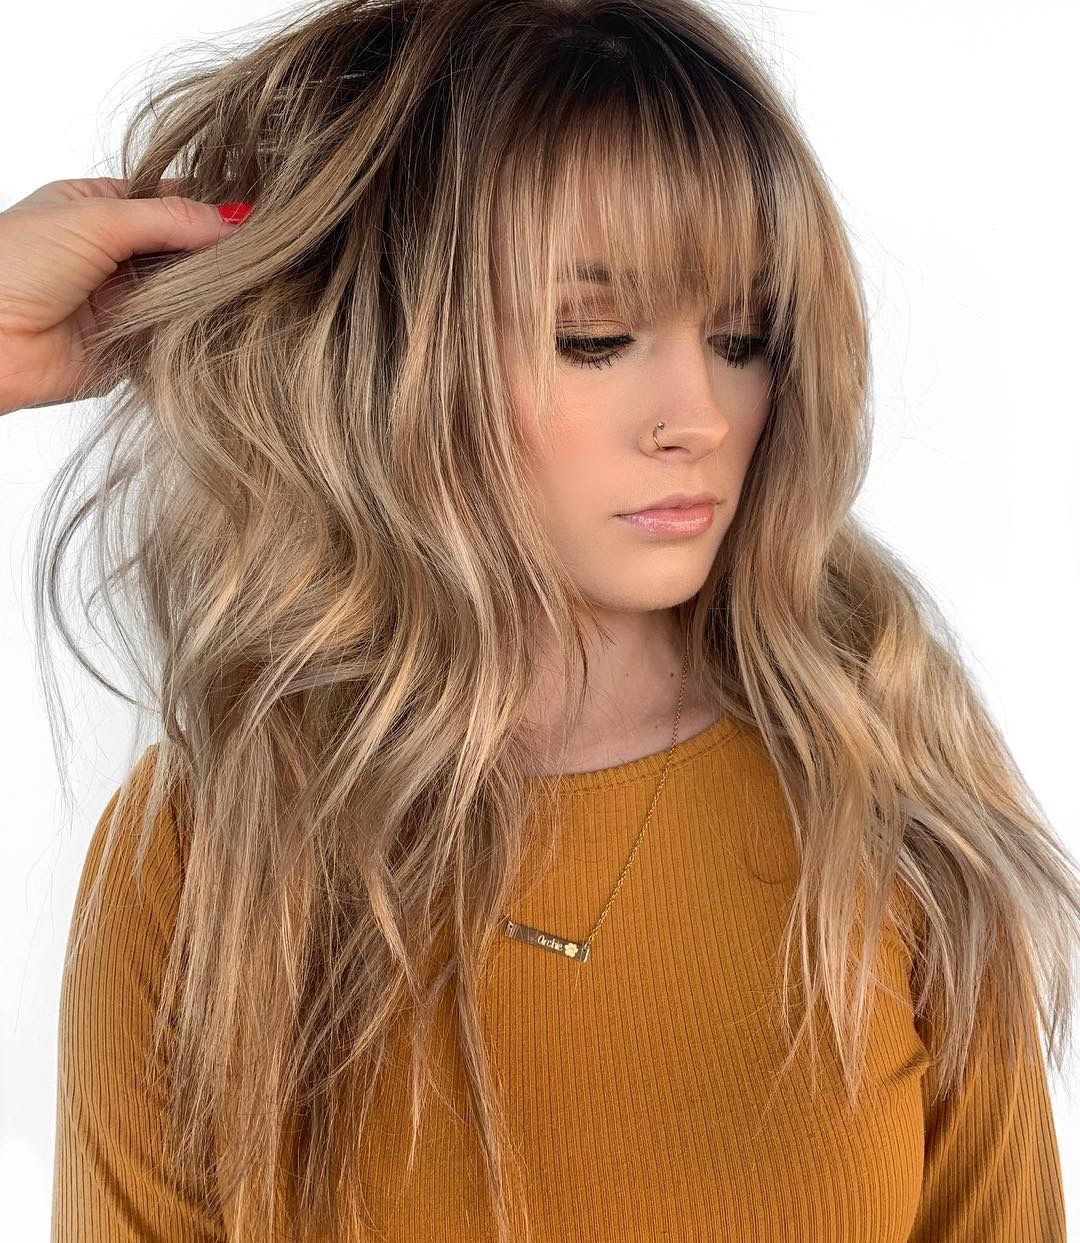 16+ Short hairstyles with long bangs and layers inspirations